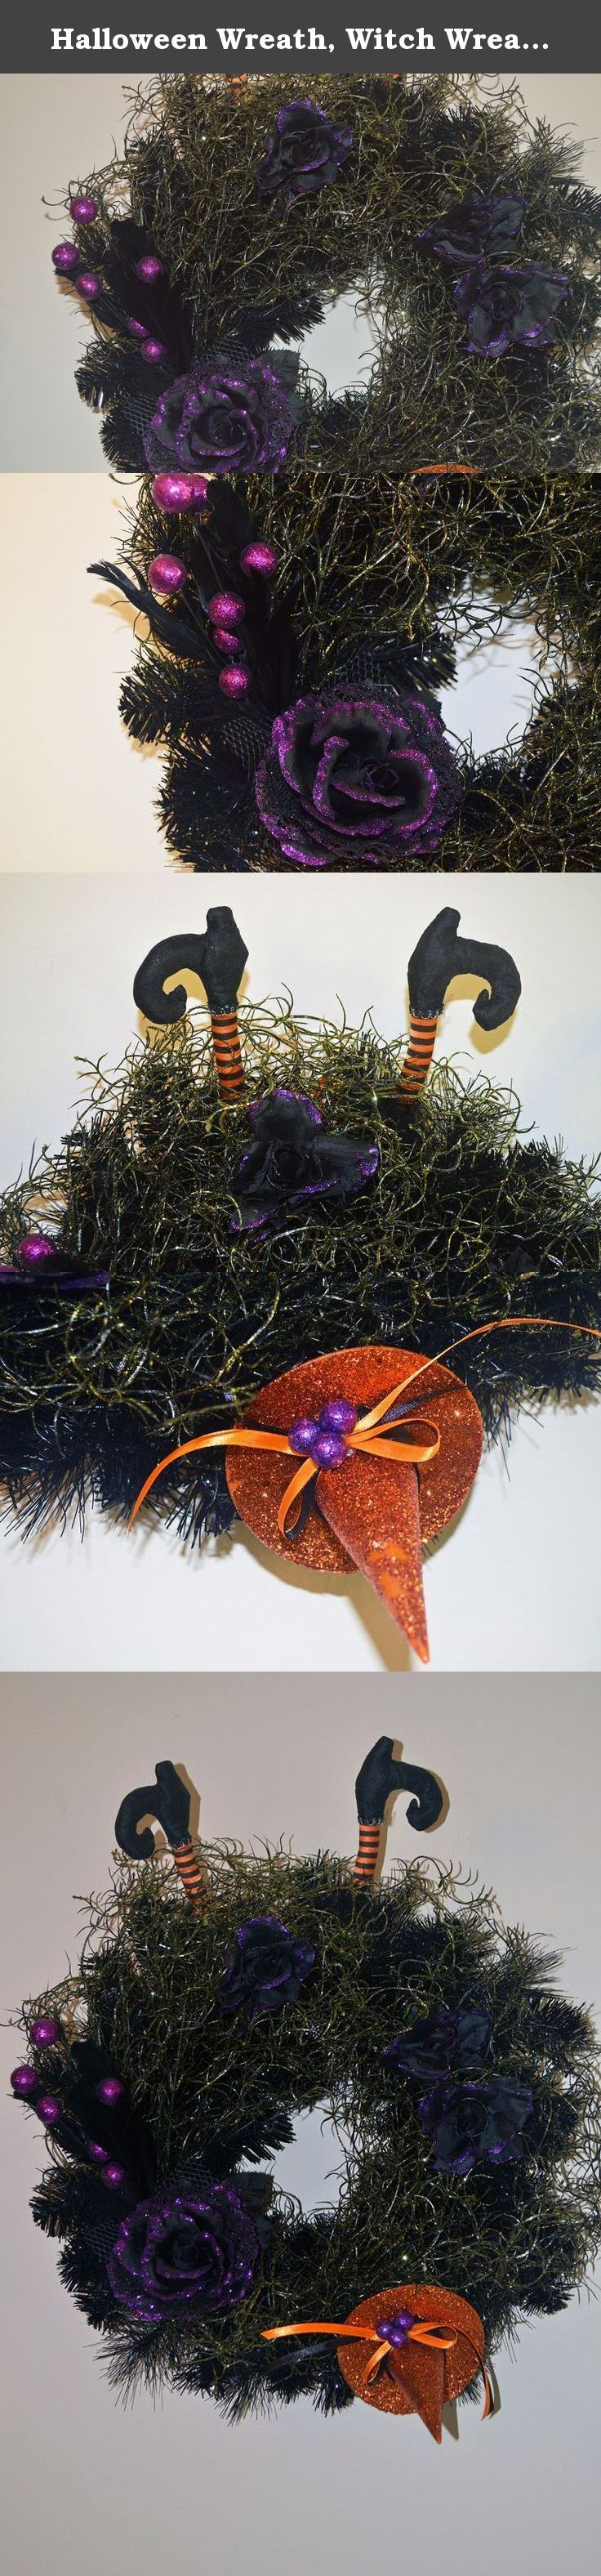 Halloween Wreath, Witch Wreath, Front Door Wreath, Witch Legs , Ready to Ship!. Witches on flying brooms are like milk and cookies. However, to fly a broom takes practice and patience. This witch has failed her broom flying test since she smashed into a spider's lair and could not untangle herself from the sticky webbing. The only things left are her legs, orange witch hat, decorative flowers and feathery corsage. The wreath base is black pine and the spider webbing is decorative green...